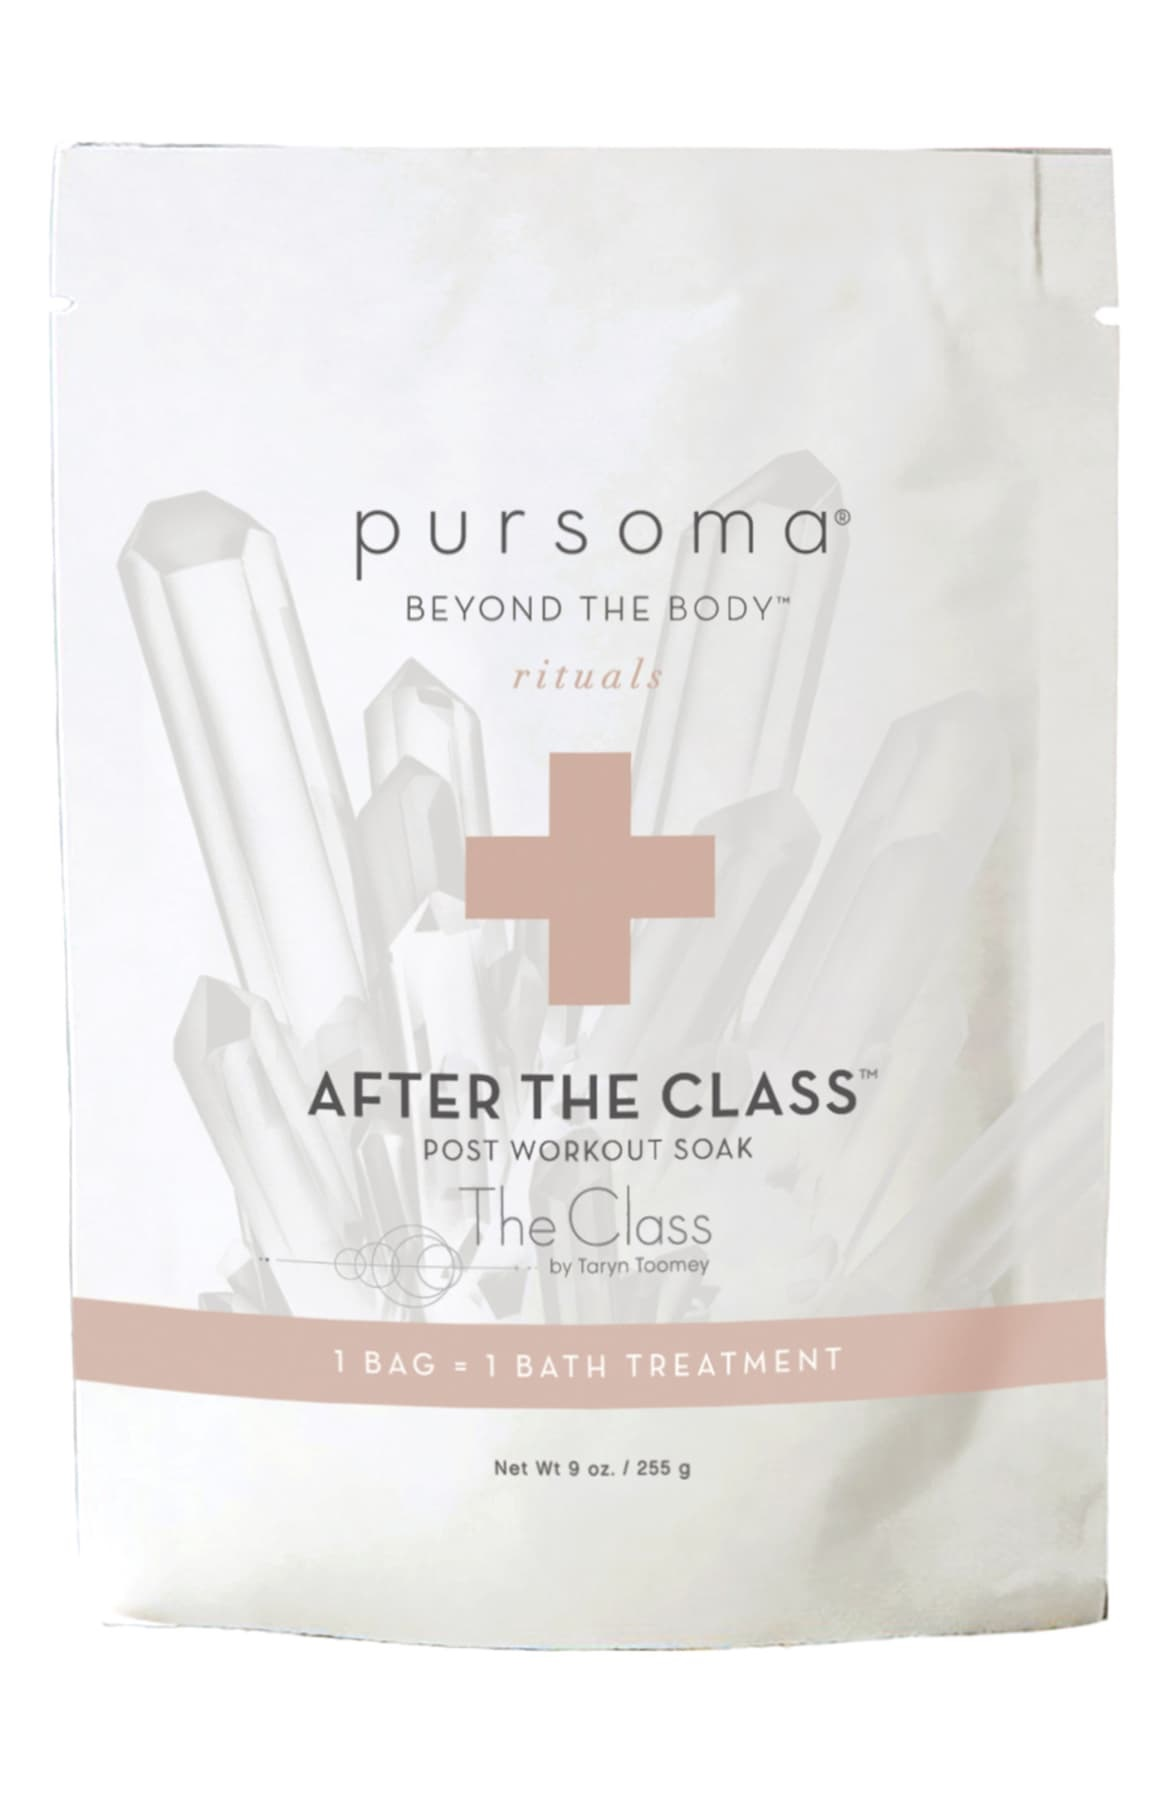 pursoma bath soak from nordstrom spring sale